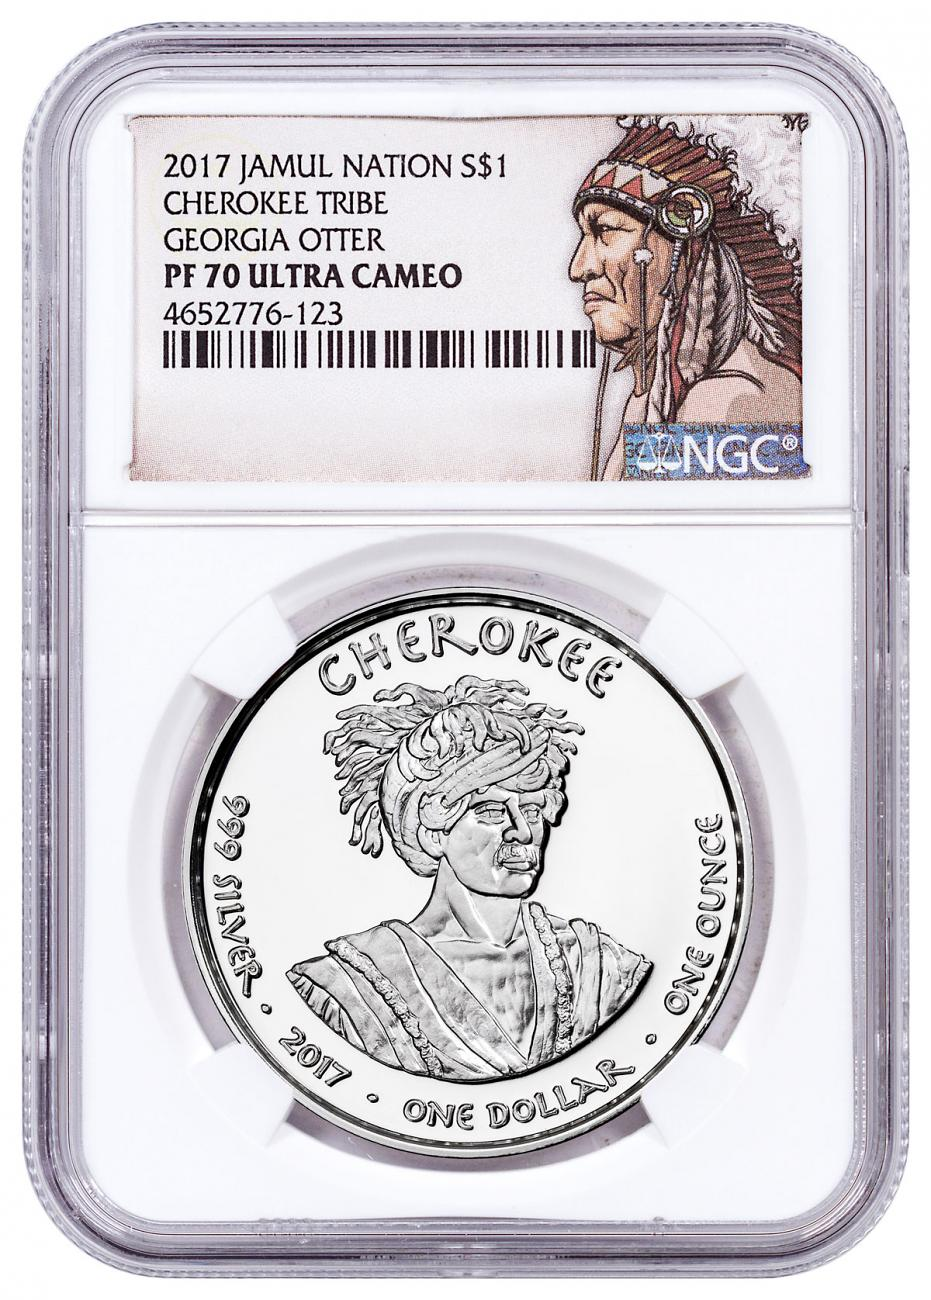 2017 Native American Silver Dollar - Georgia Cherokee - Otter 1 oz Silver Proof Coin NGC PF70 UC Native American Label